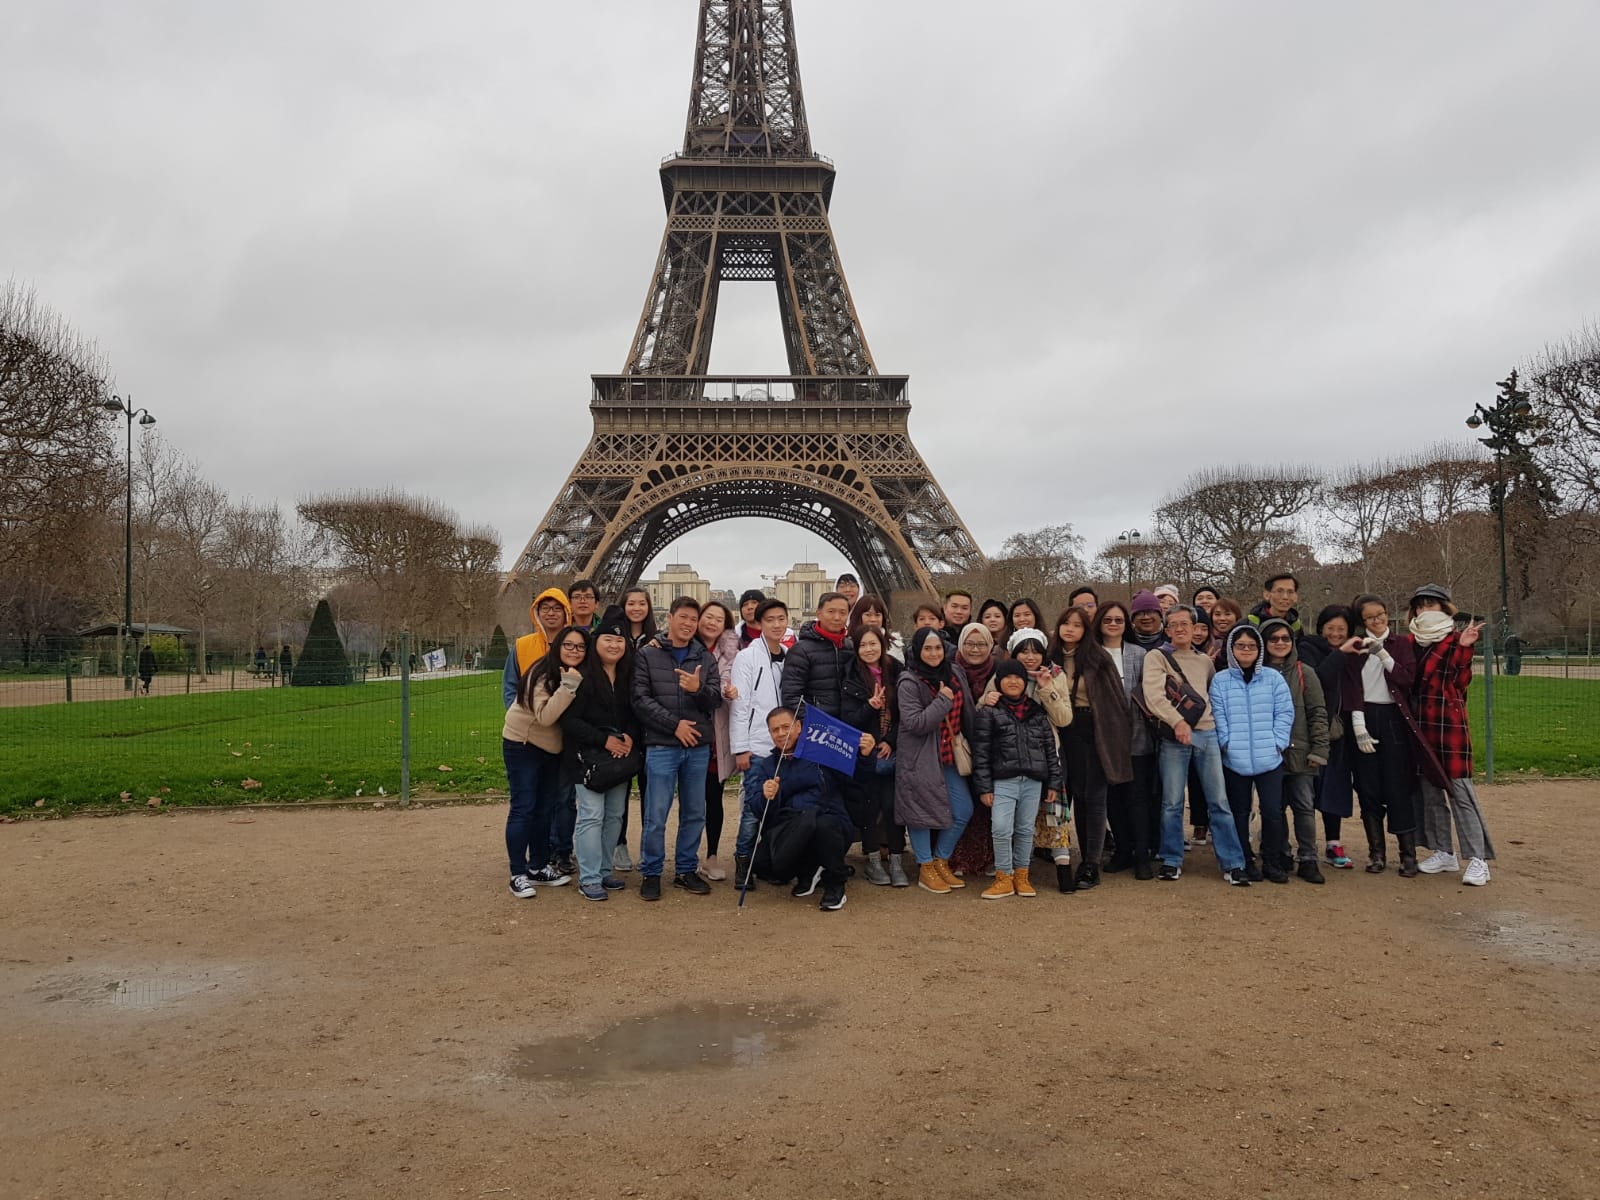 Europe USA Tour Packages From EU Holidays Tour Agency In Singapore